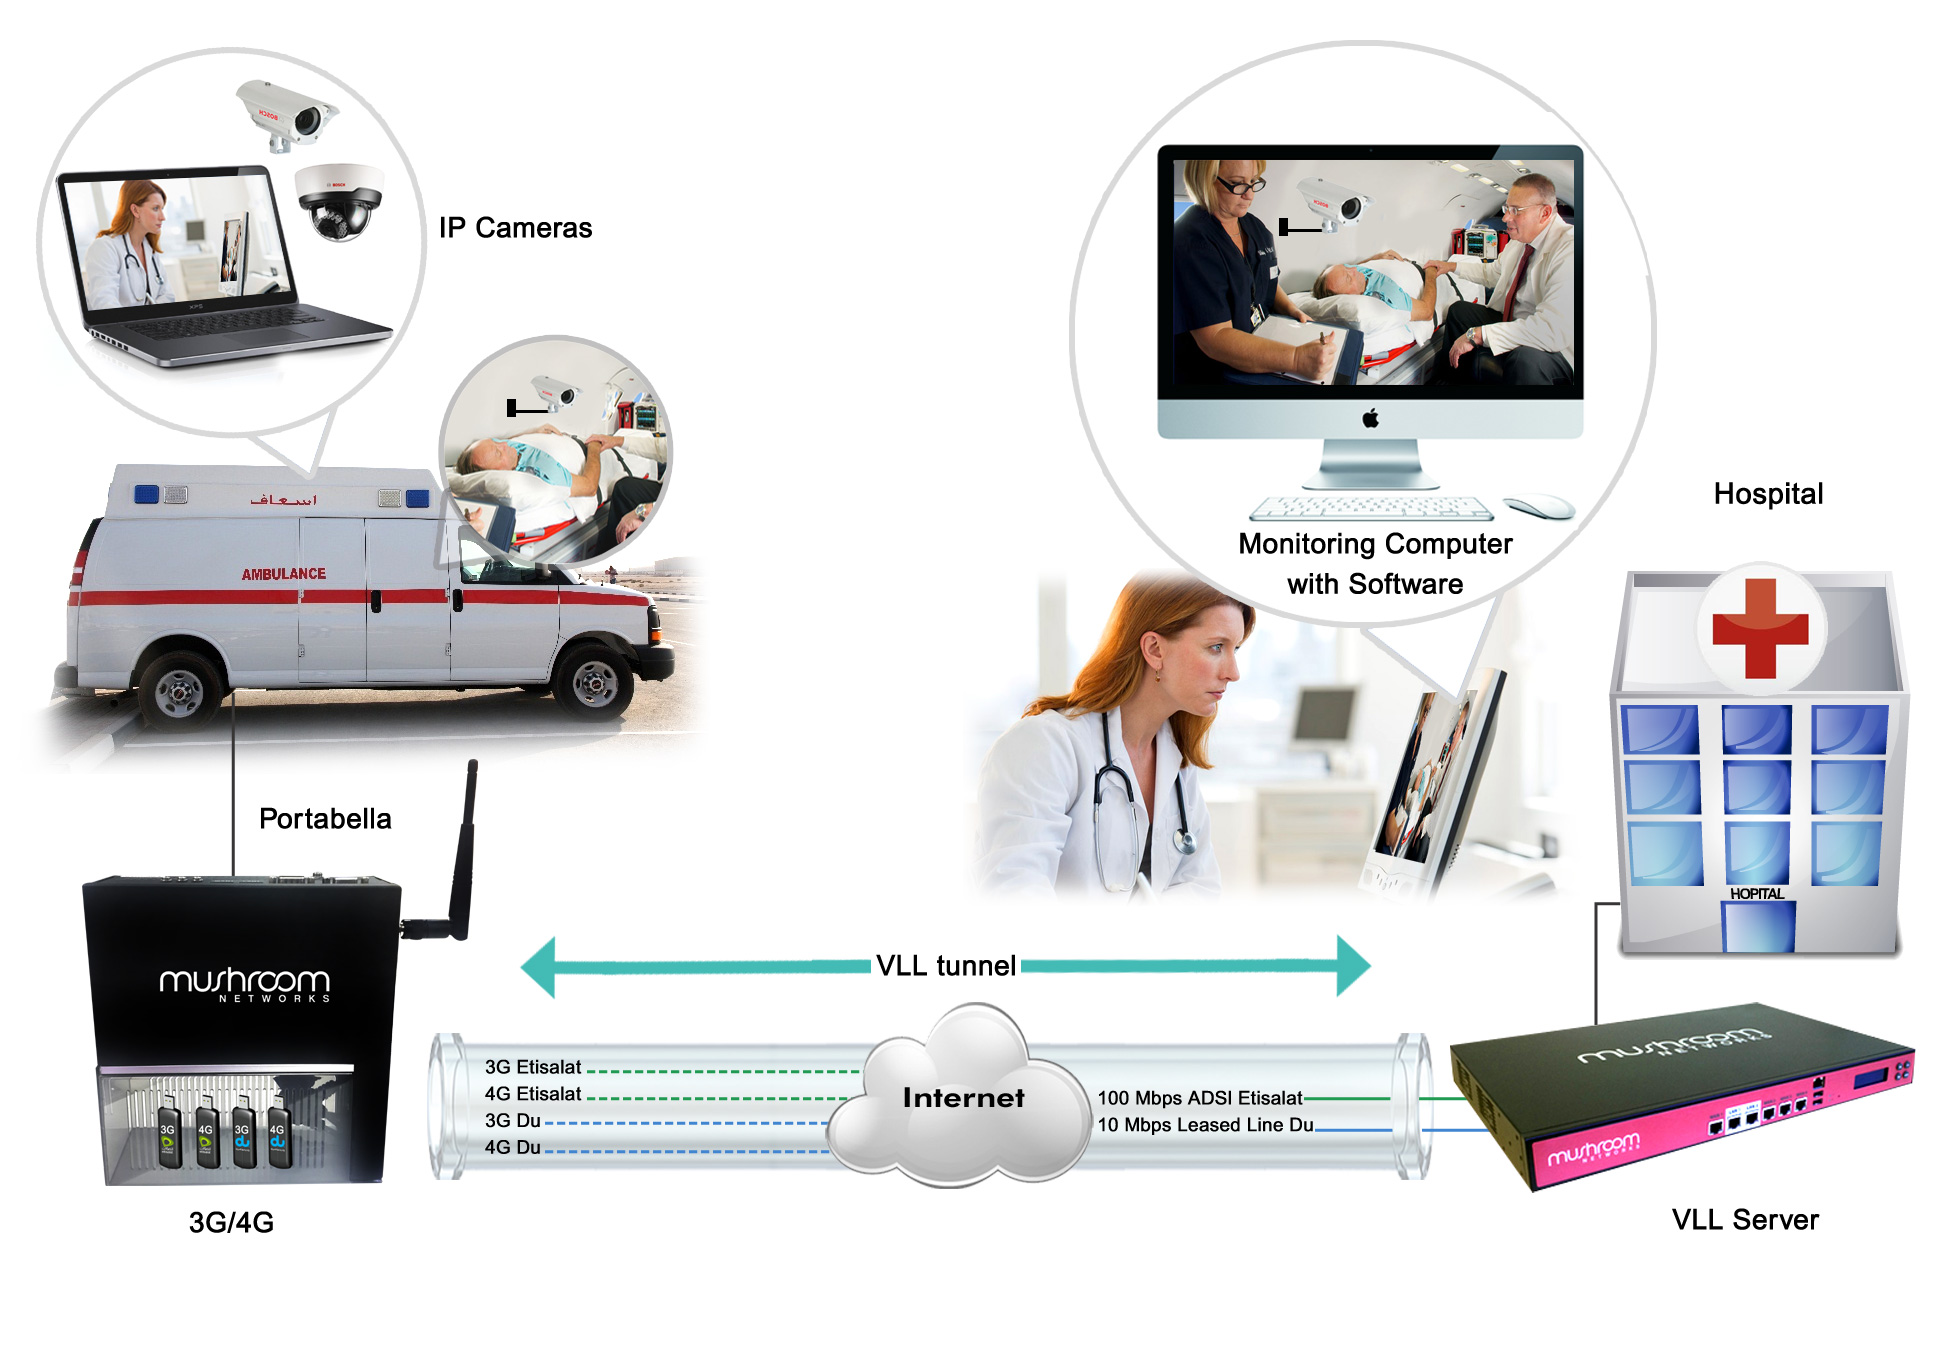 Internet Link Bonding and Virtual Leased Line solution in Health care sector